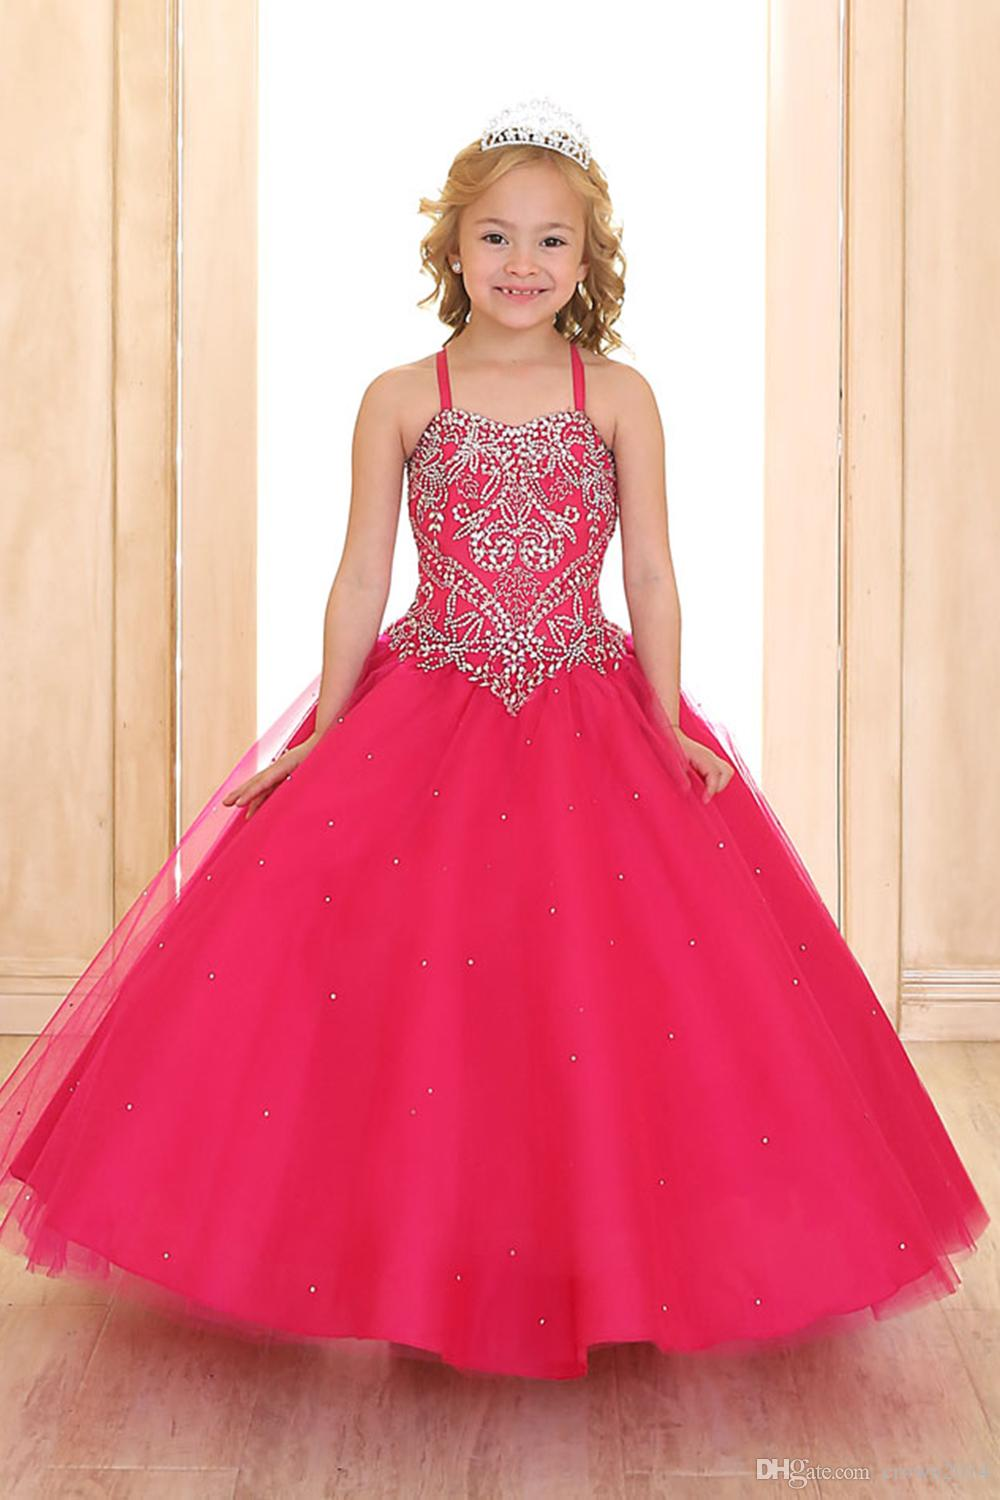 Red Princess Ball Gown Little Girls Pageant Dresses with Short Lovely Bolero Jacket Beaded Crystal Floor Length Tulle Kids Puffy Party Dress